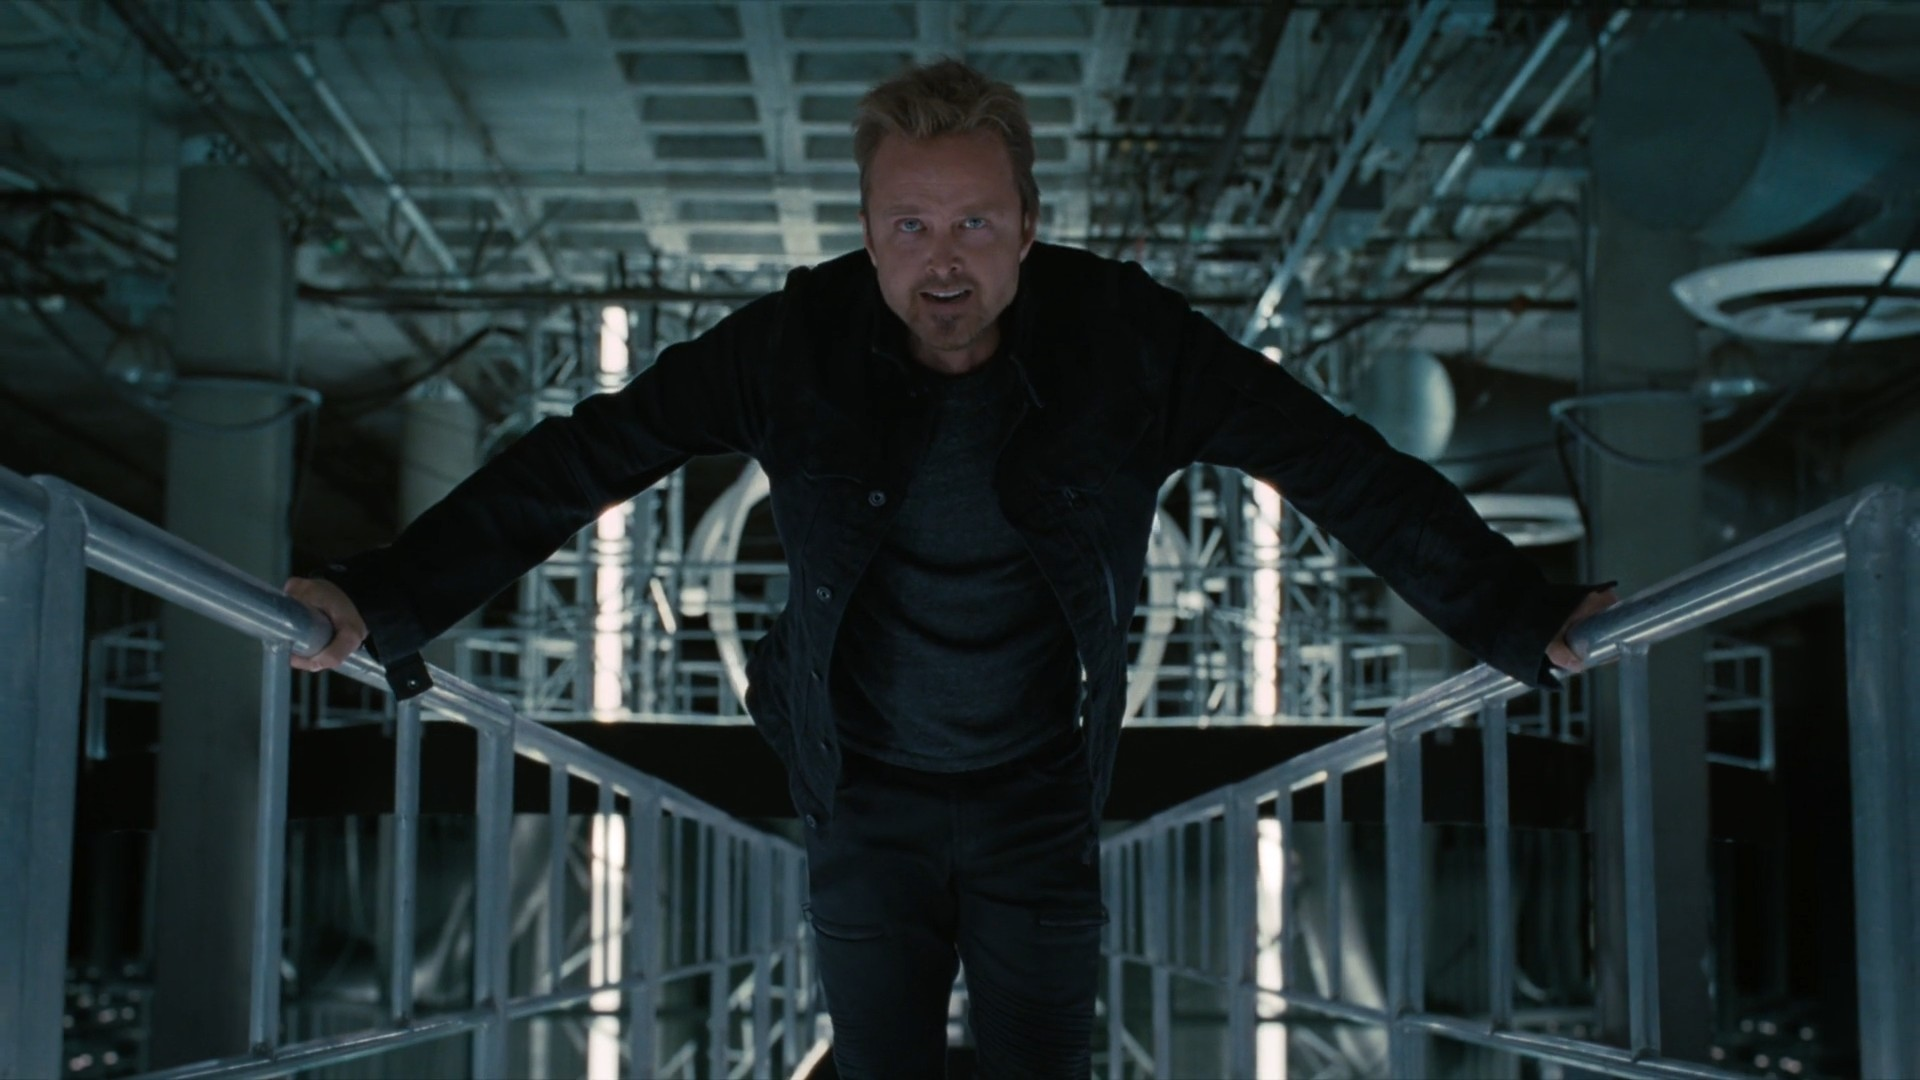 Westworld S03E07 Passed Pawn Aaron Paul as Caleb